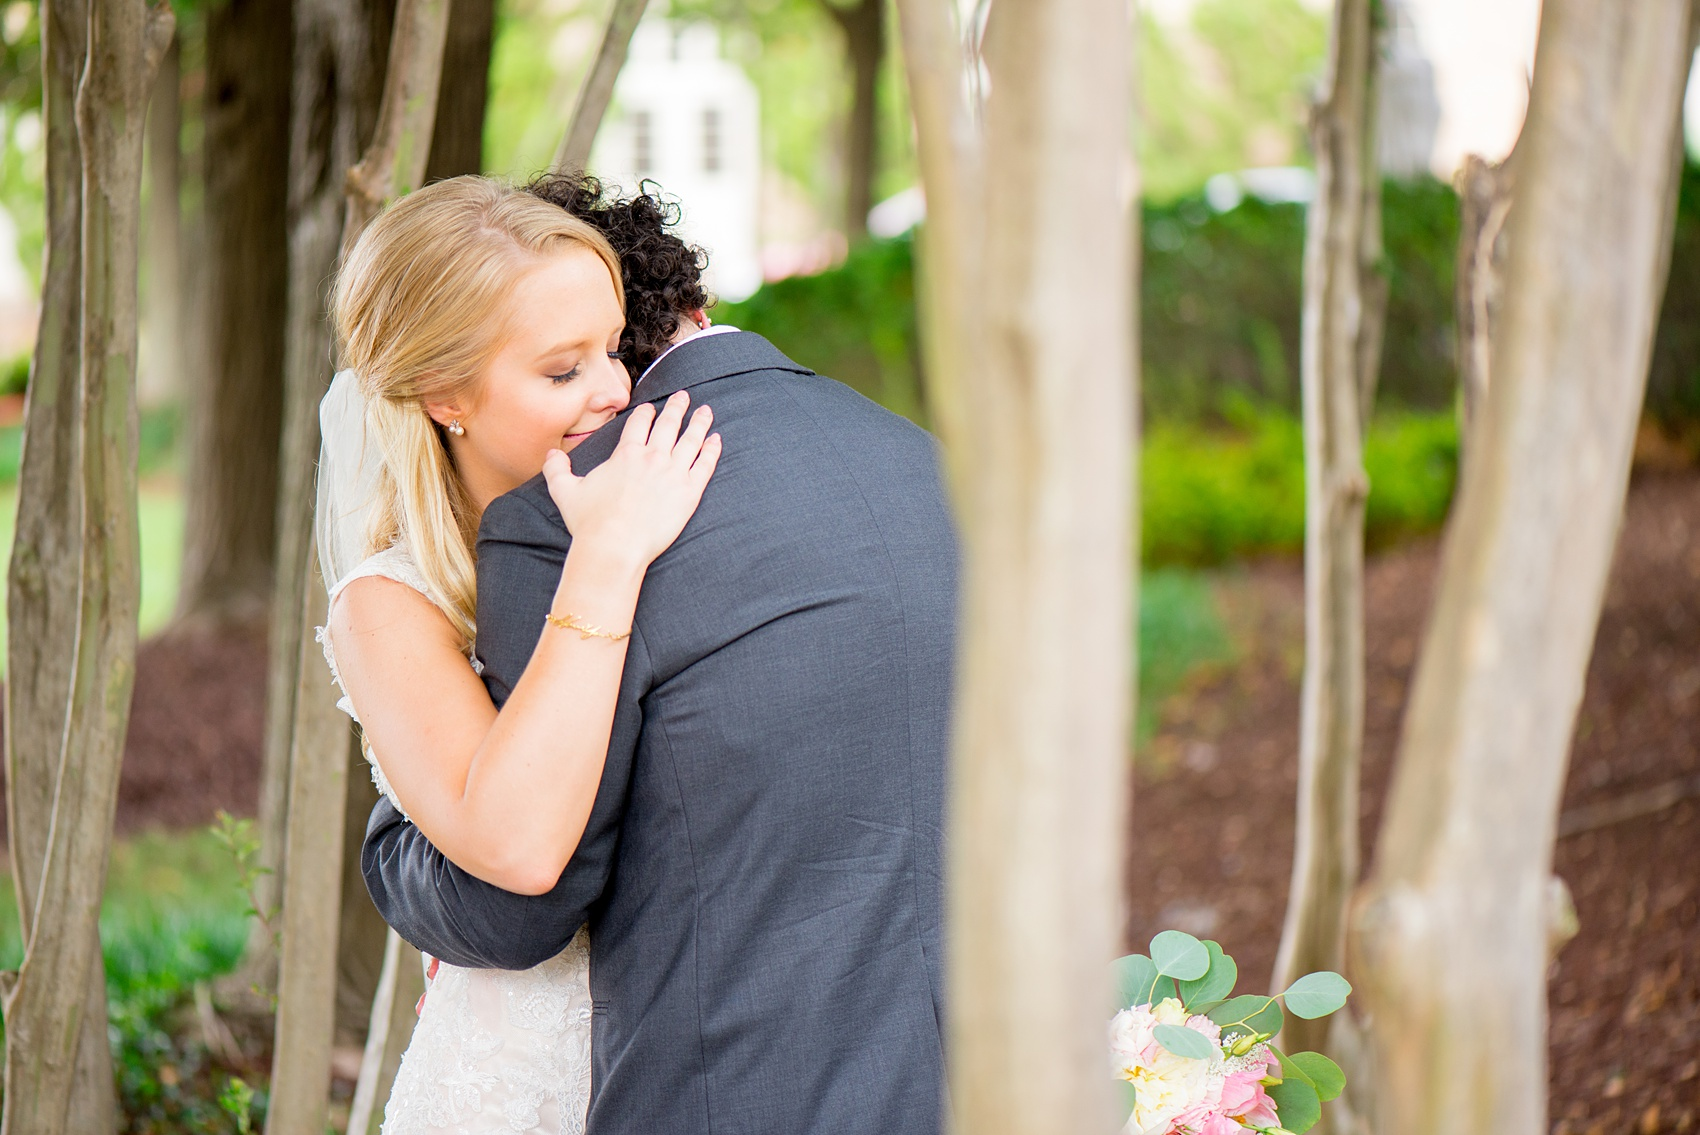 Mikkel Paige Photography photos from a wedding in Durham, North Carolina. Picture of the bride and groom hugging.